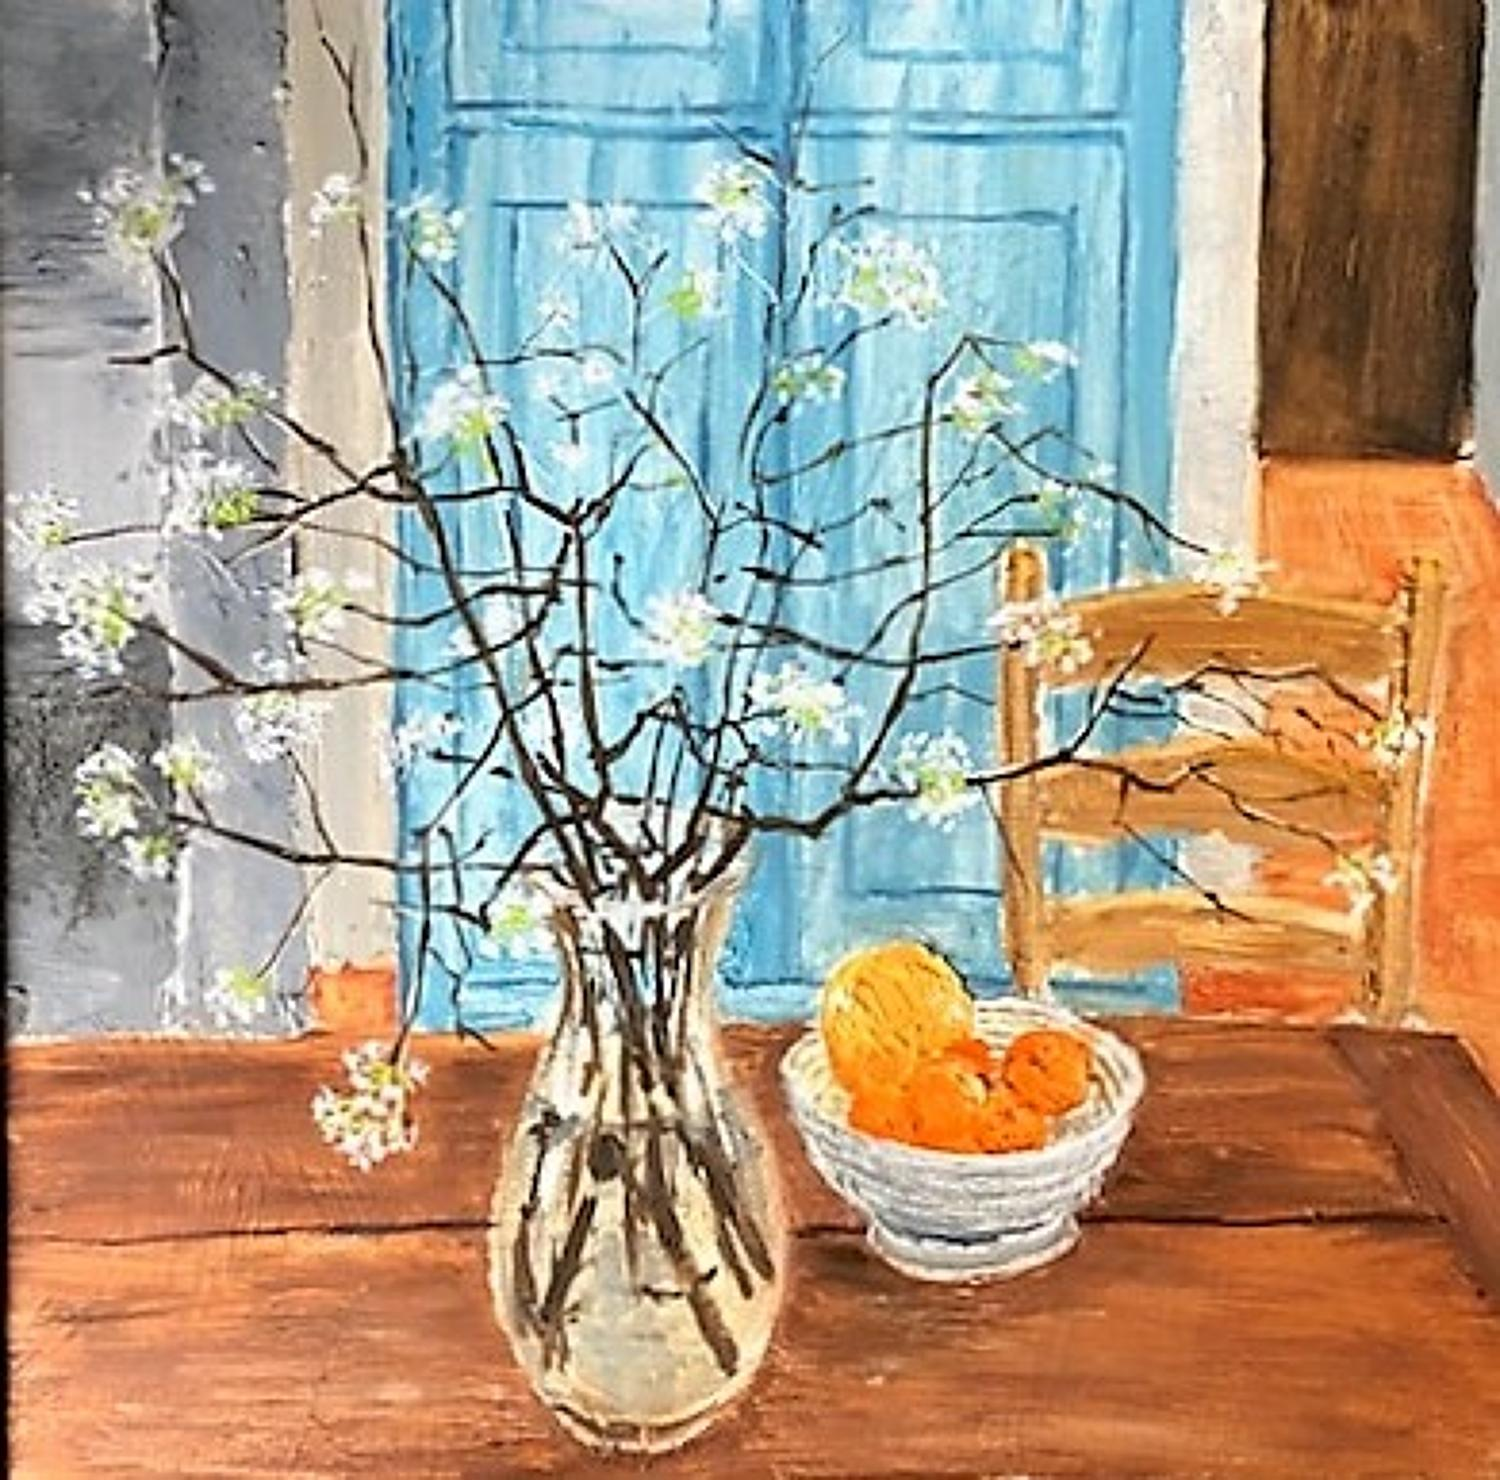 Alex Uxbridge - Kitchen Still Life